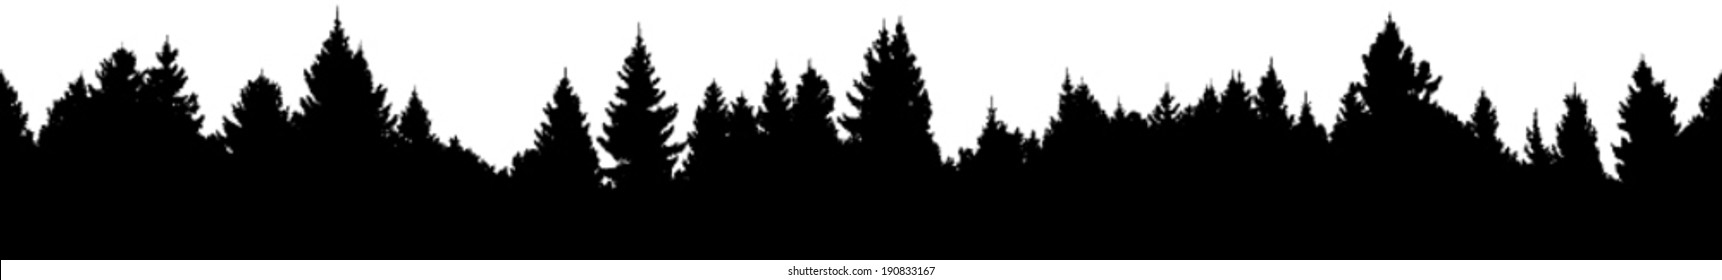 forest silhouette images  stock photos   vectors clipart christmas presents clip art christmas images